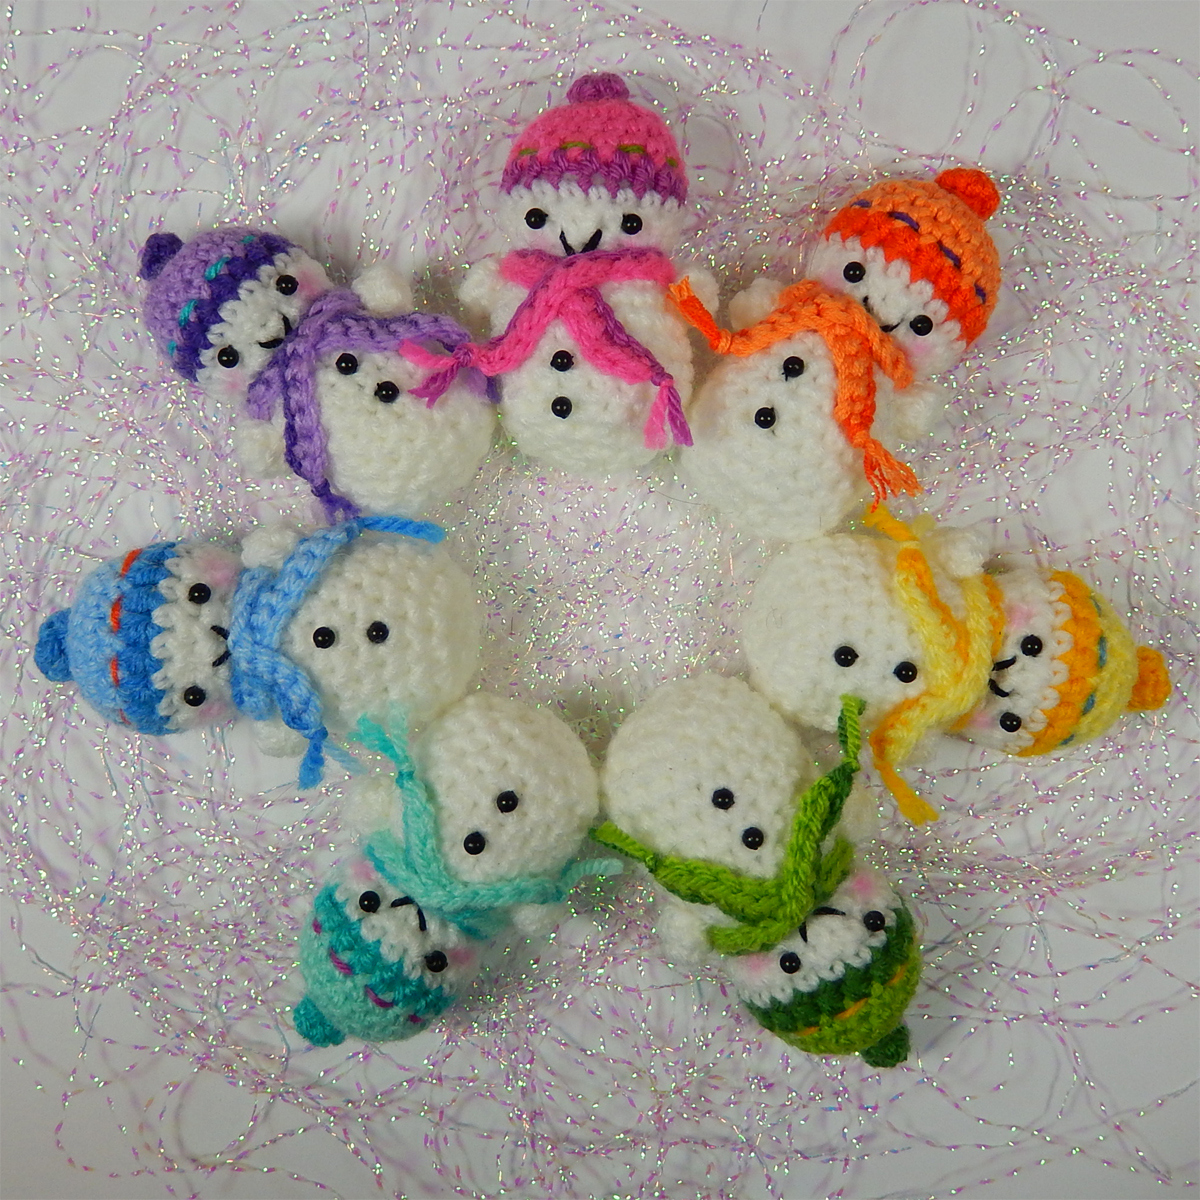 Crochet Patterns Free Snowman : Cute Snowman Free Crochet Pattern ? AllCrafts Free Crafts ...